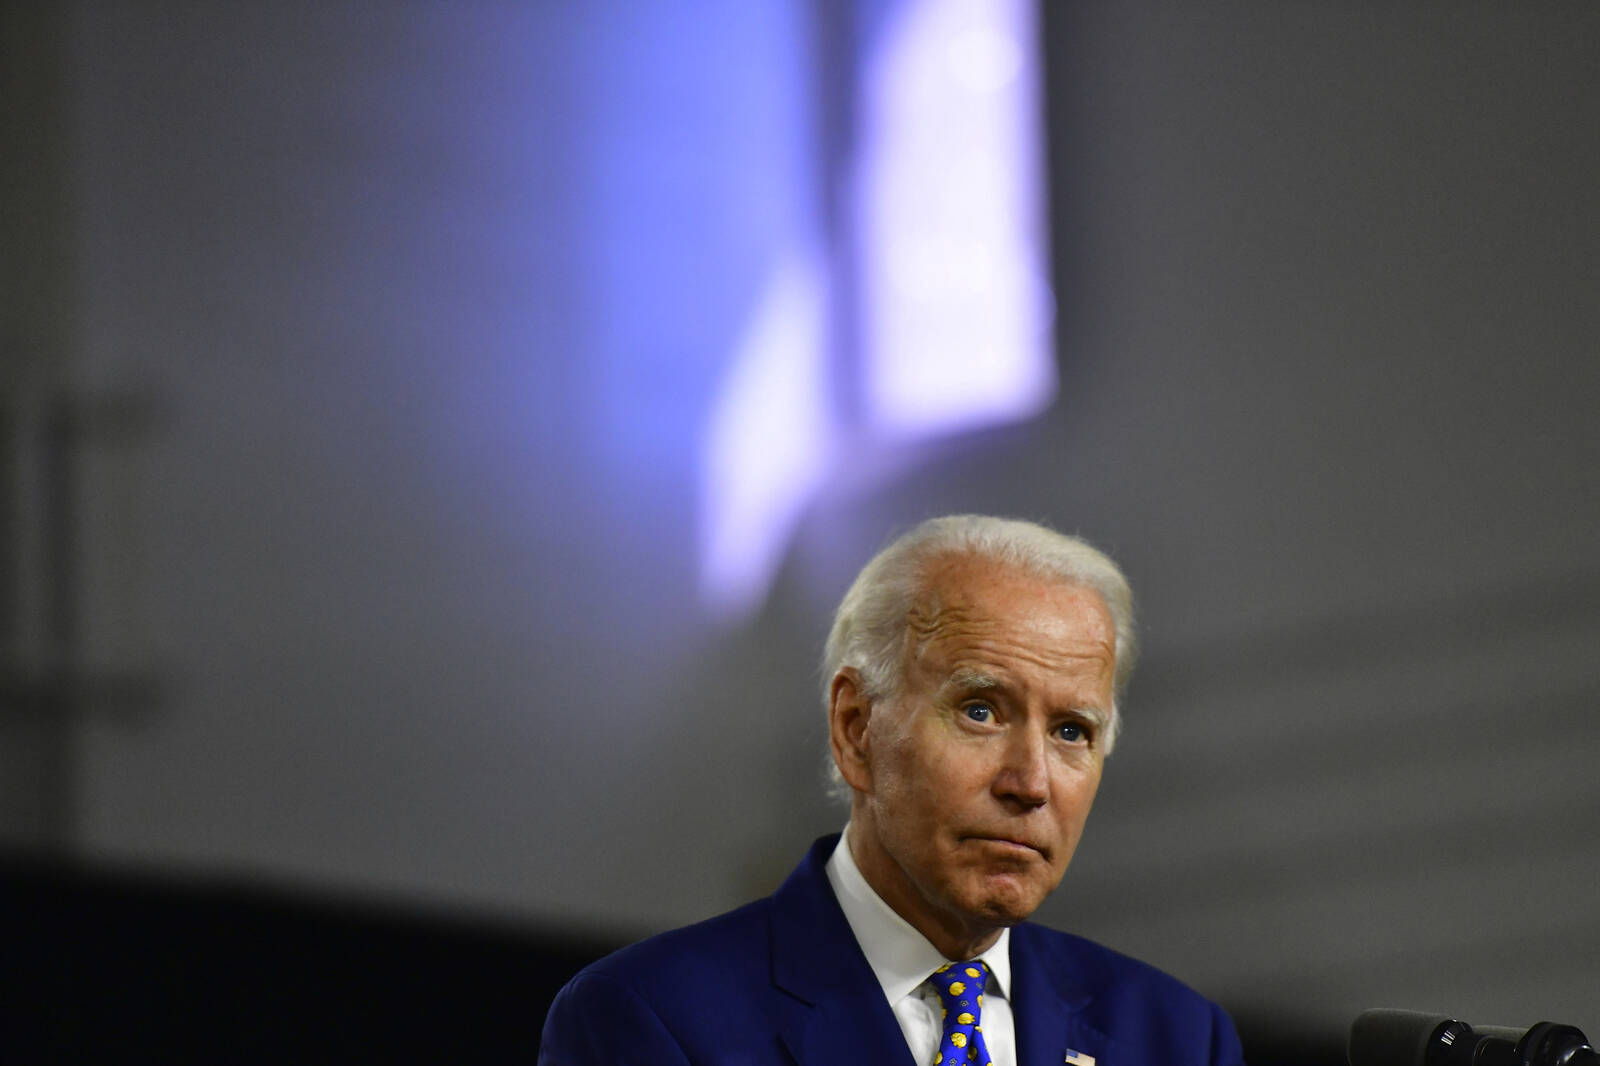 Joe Biden listens to a question from the media after delivering a speech at the William Hicks Anderson Community Center, on July 28, 2020 in Wilmington, Delaware. Credit: Mark Makela/Getty Images